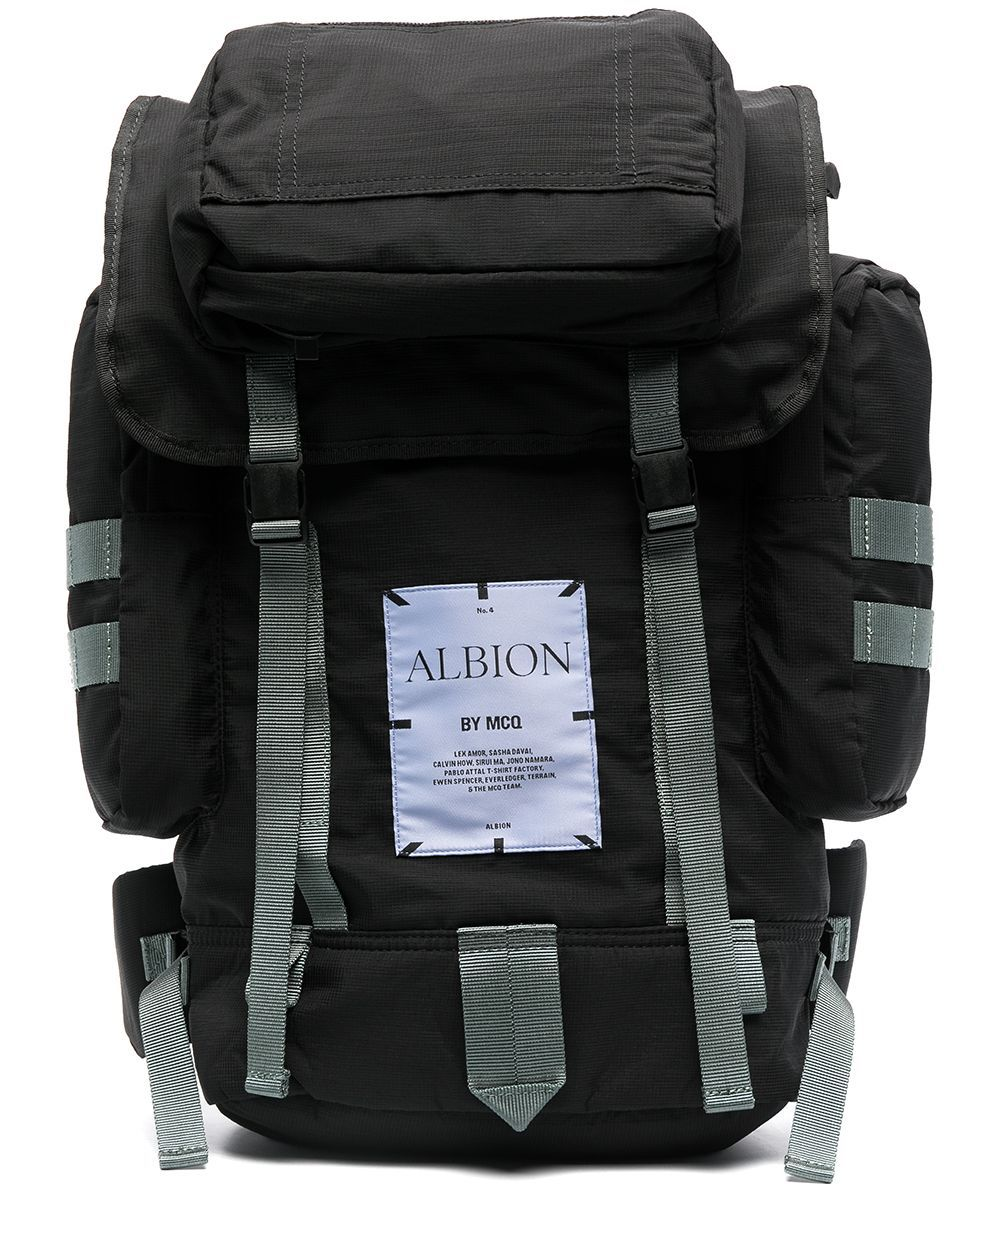 McQ Albion No. 4 Backpack